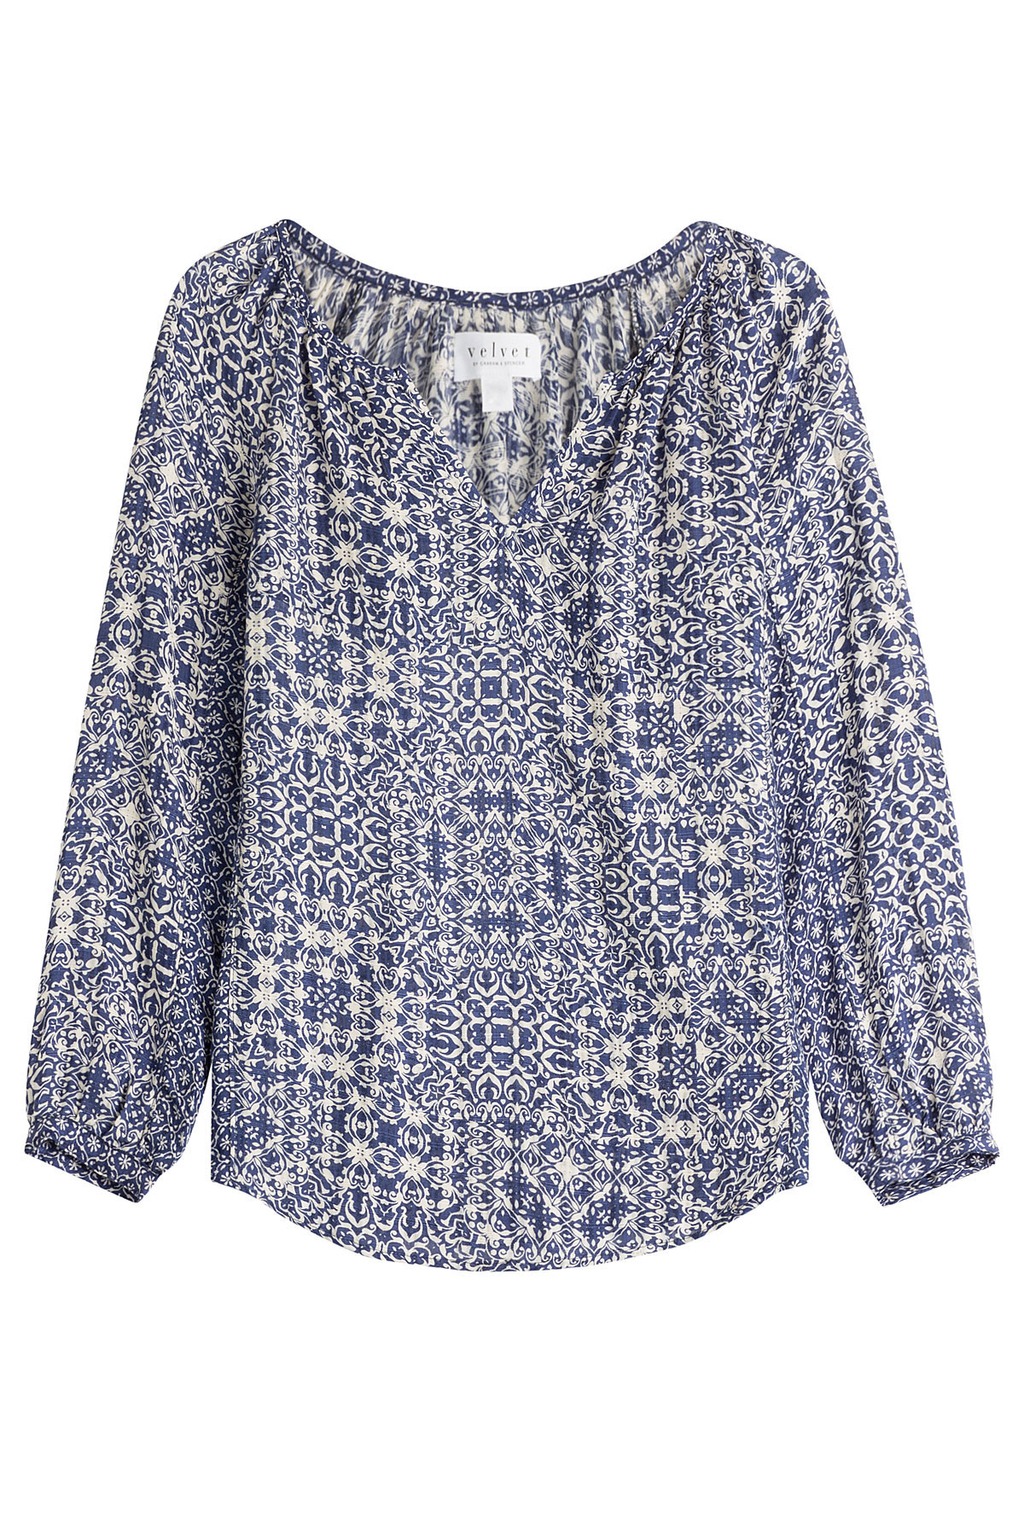 Printed Tunic Top Multicolored - secondary colour: white; predominant colour: navy; occasions: casual, creative work; length: standard; style: top; neckline: collarstand & mandarin with v-neck; fibres: viscose/rayon - 100%; fit: body skimming; sleeve length: 3/4 length; sleeve style: standard; pattern type: fabric; pattern: patterned/print; texture group: other - light to midweight; pattern size: big & busy (top); season: s/s 2016; wardrobe: highlight